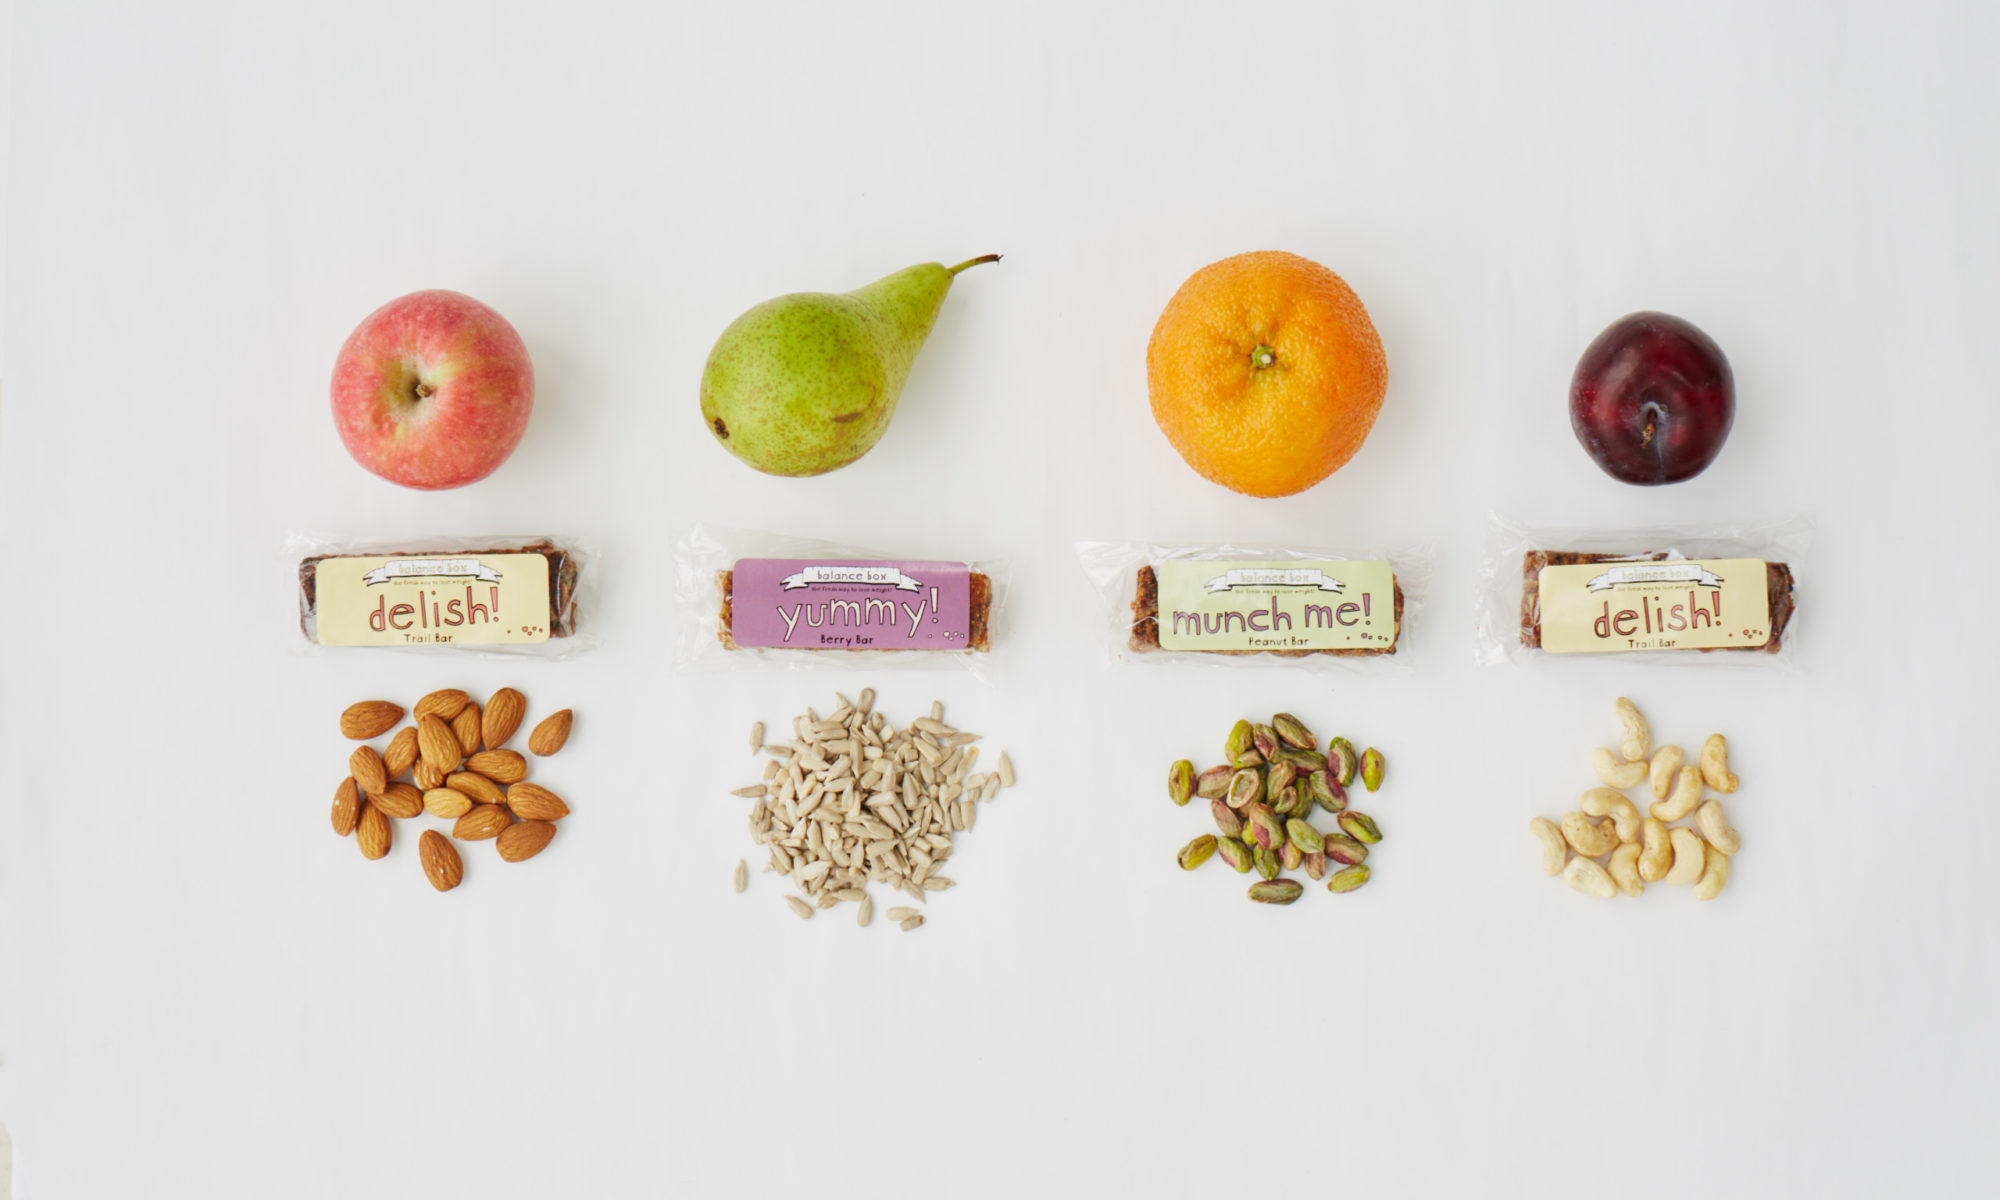 Fruit, nuts, seeds and energy bars lined up